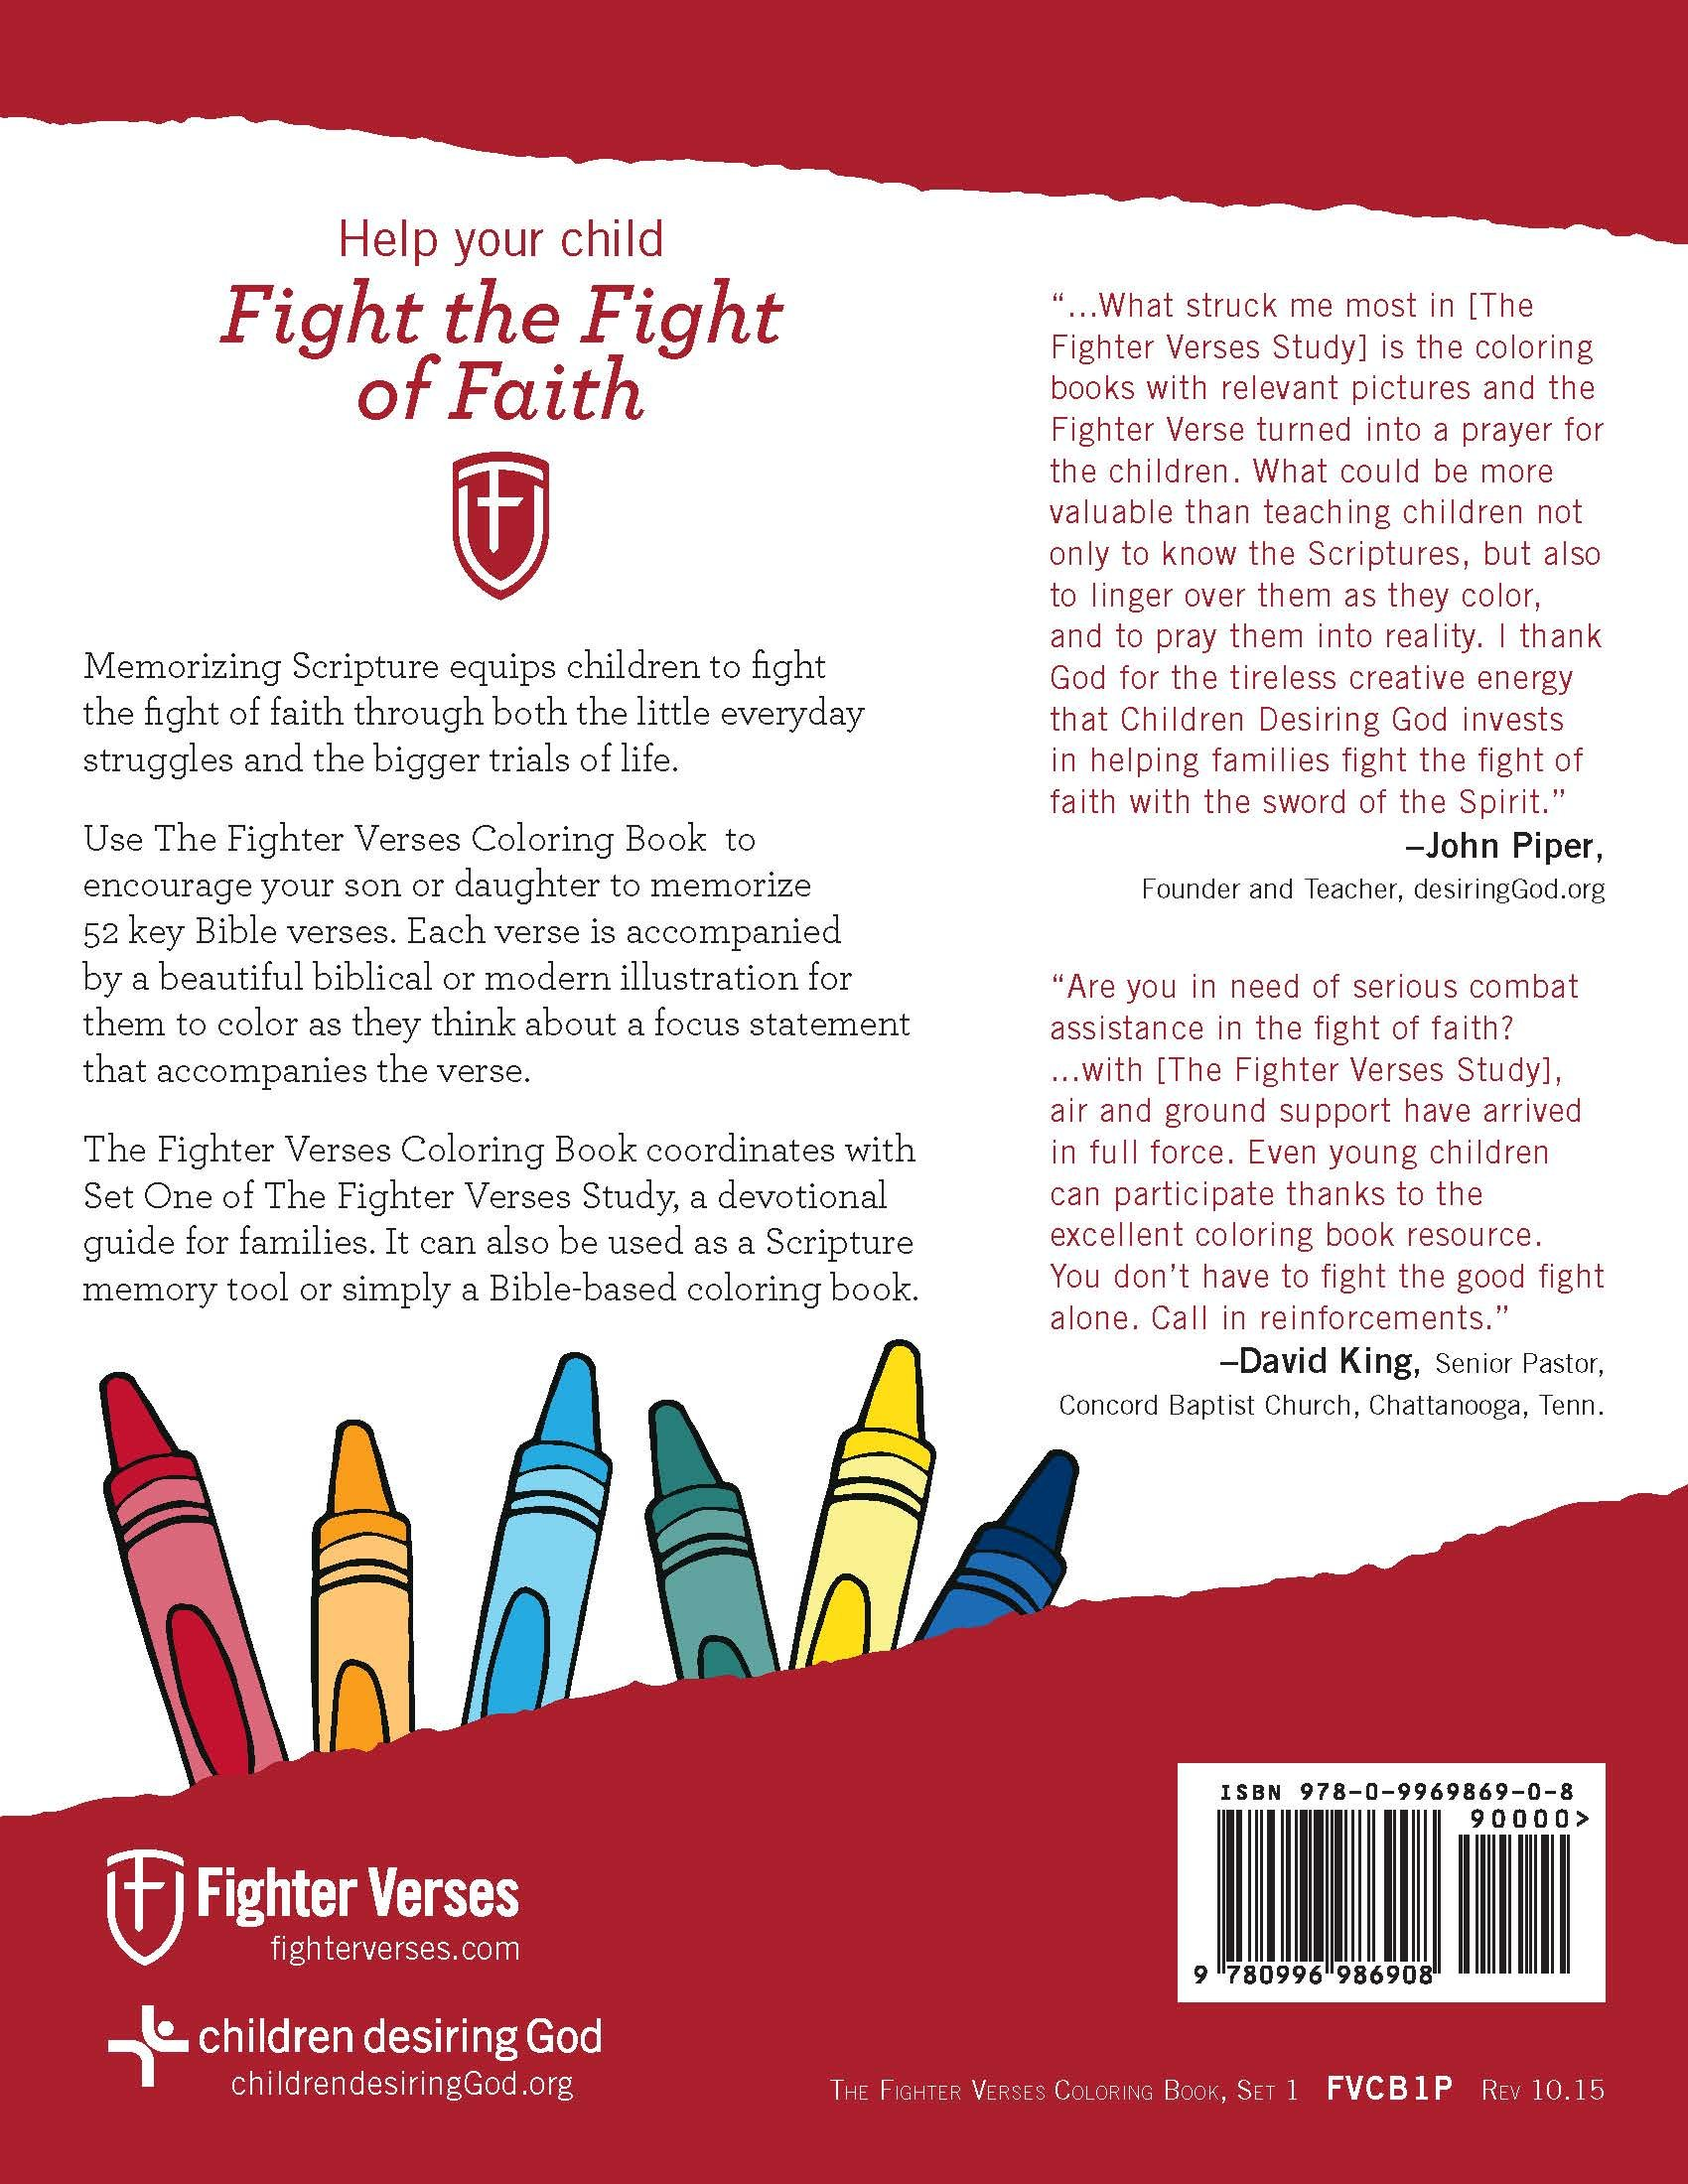 The Fighter Verses Coloring Book, Set One: Sally Michael, Linda ...